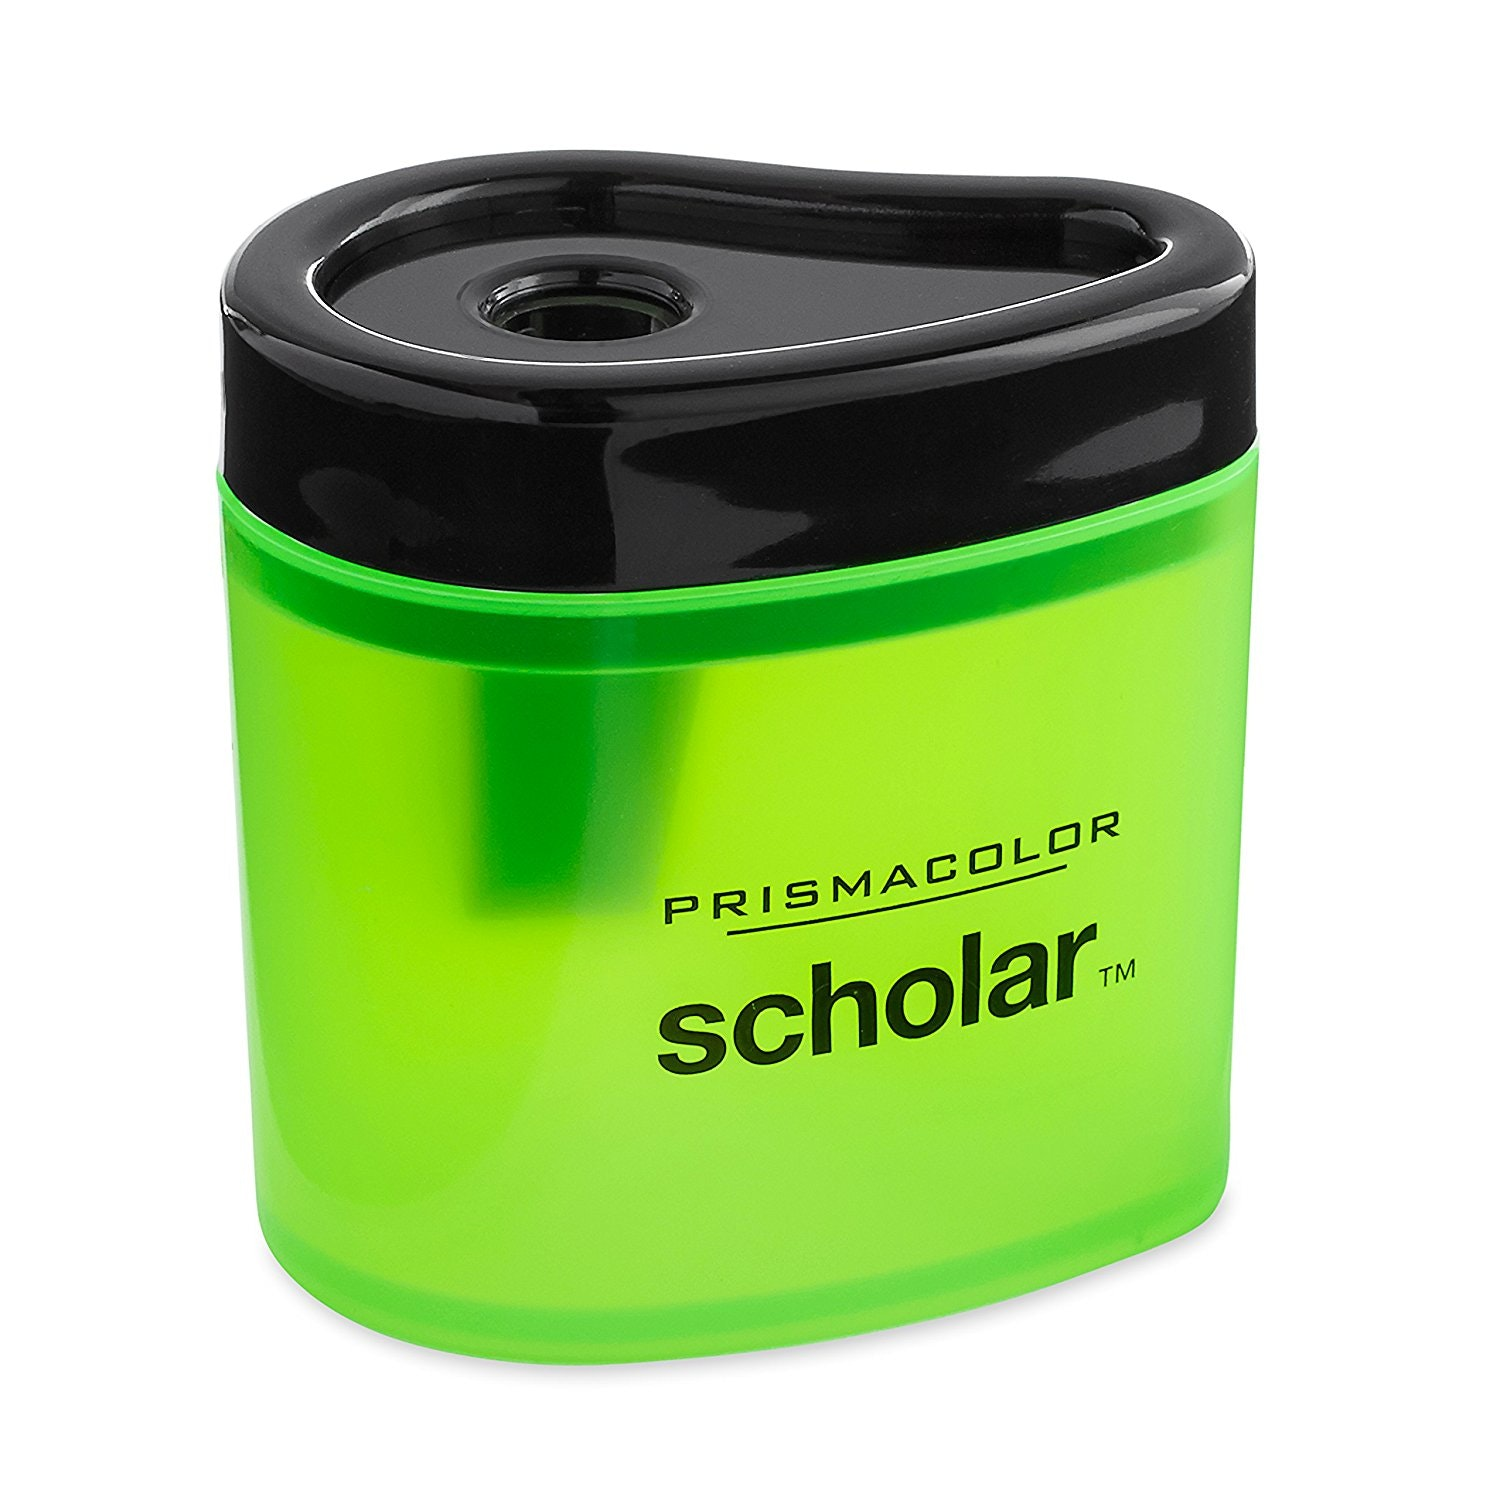 This compact pencil sharpener